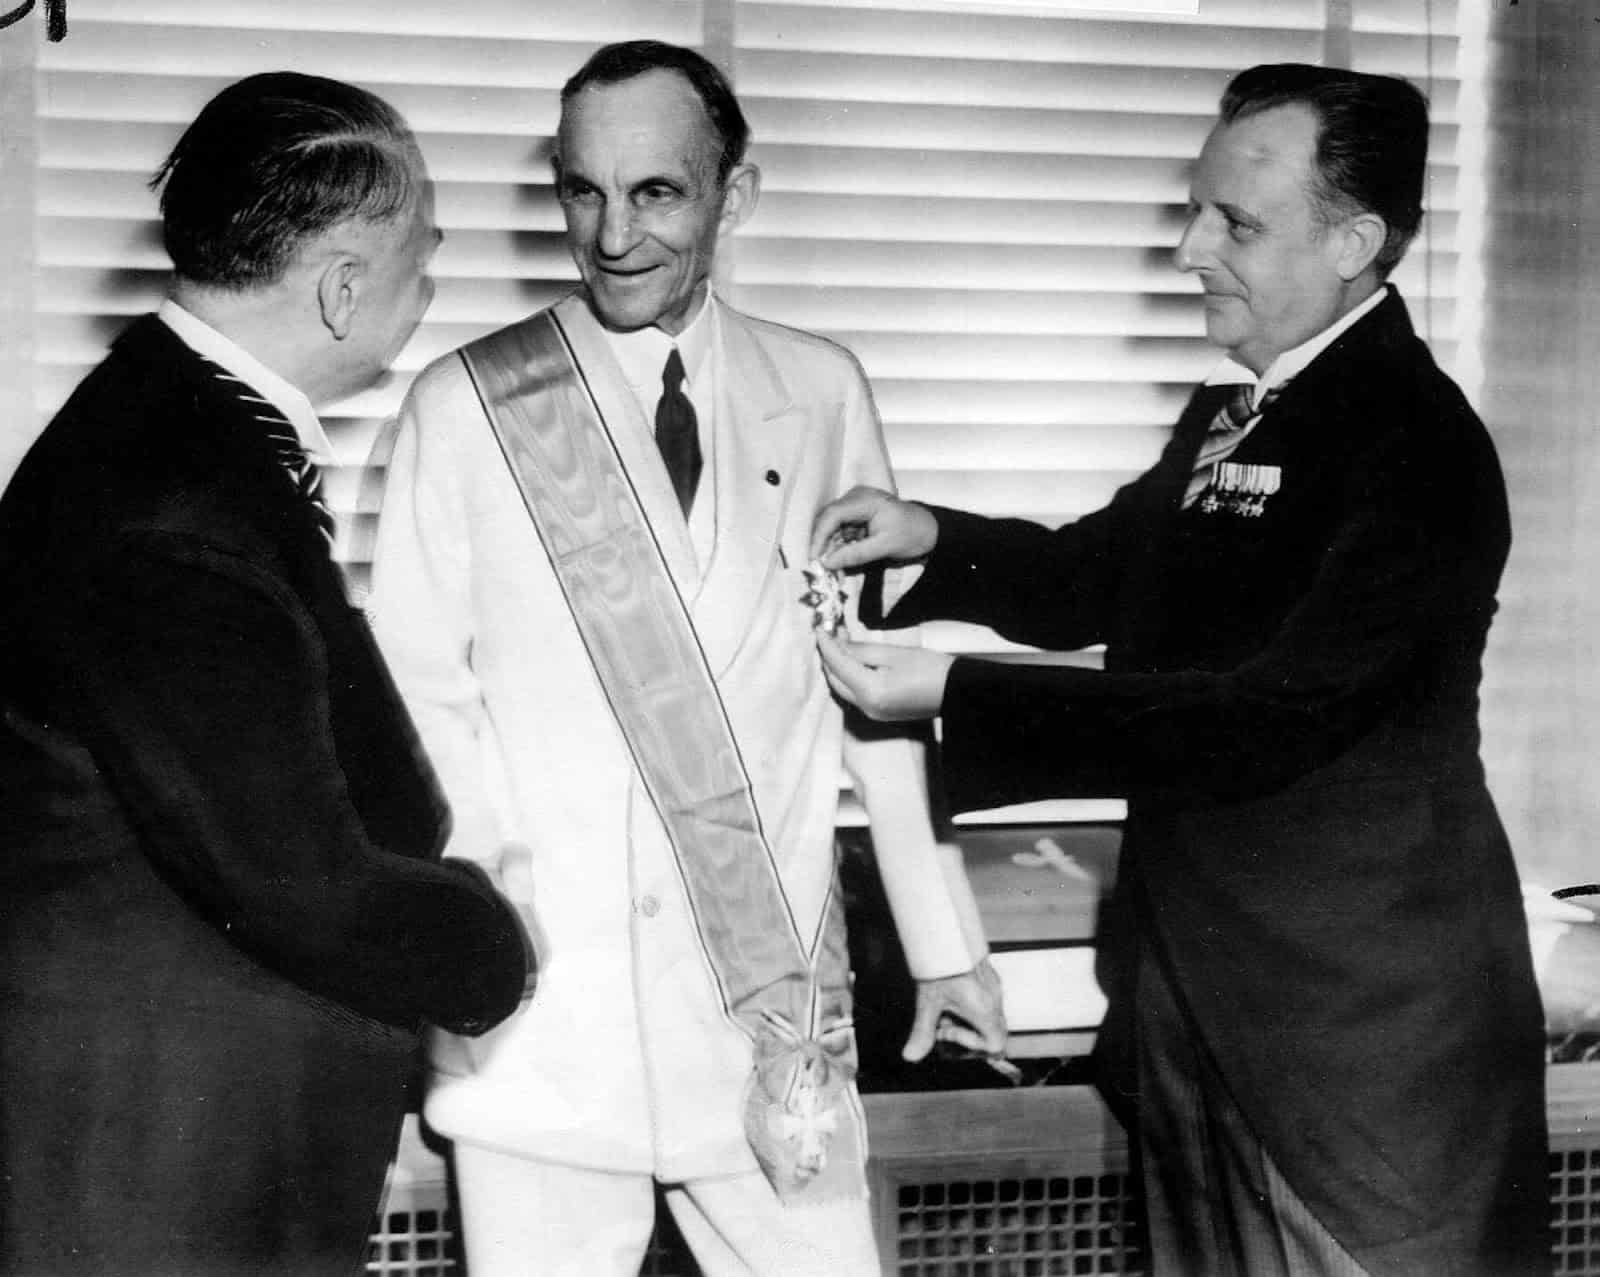 ford henry ford receiving the grand cross of the german eagle from german officials in 1938. rare historical photos روزیاتو: ۱۲ کمپانی مشهوری که در طول جنگ جهانی دوم با آدولف هیتلر همکاری می‌کردند اخبار IT